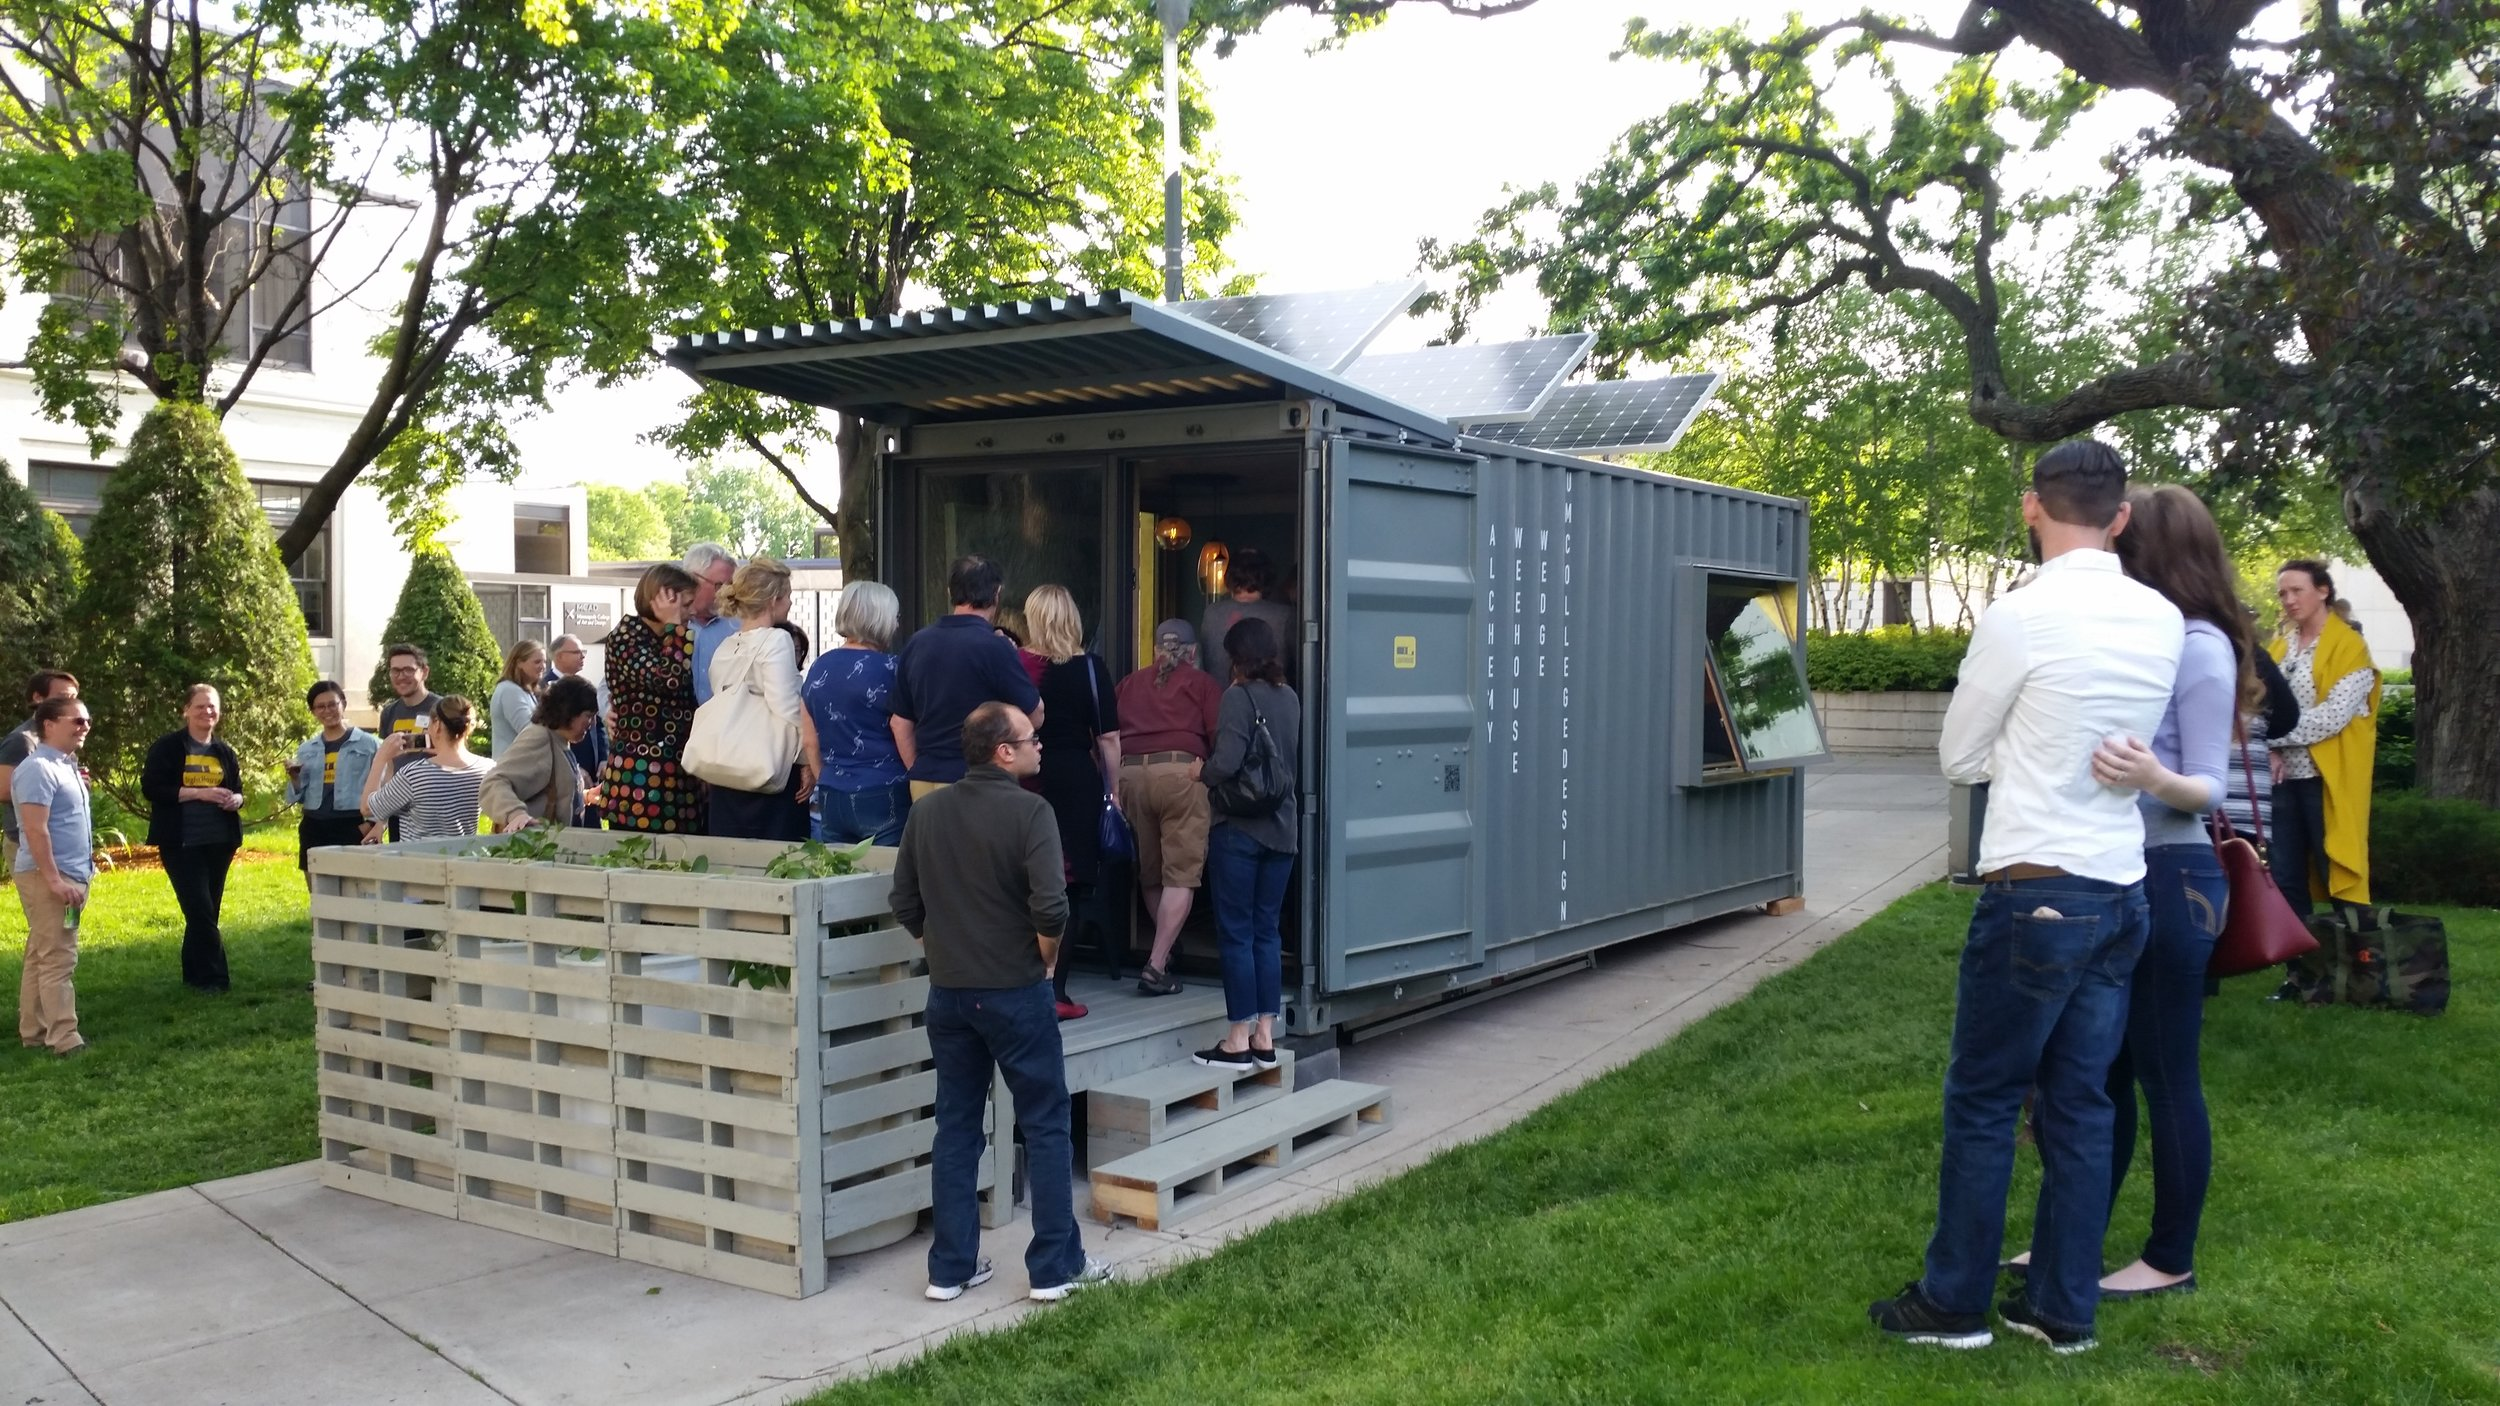 A stand-alone 20' container hotel room that can move around